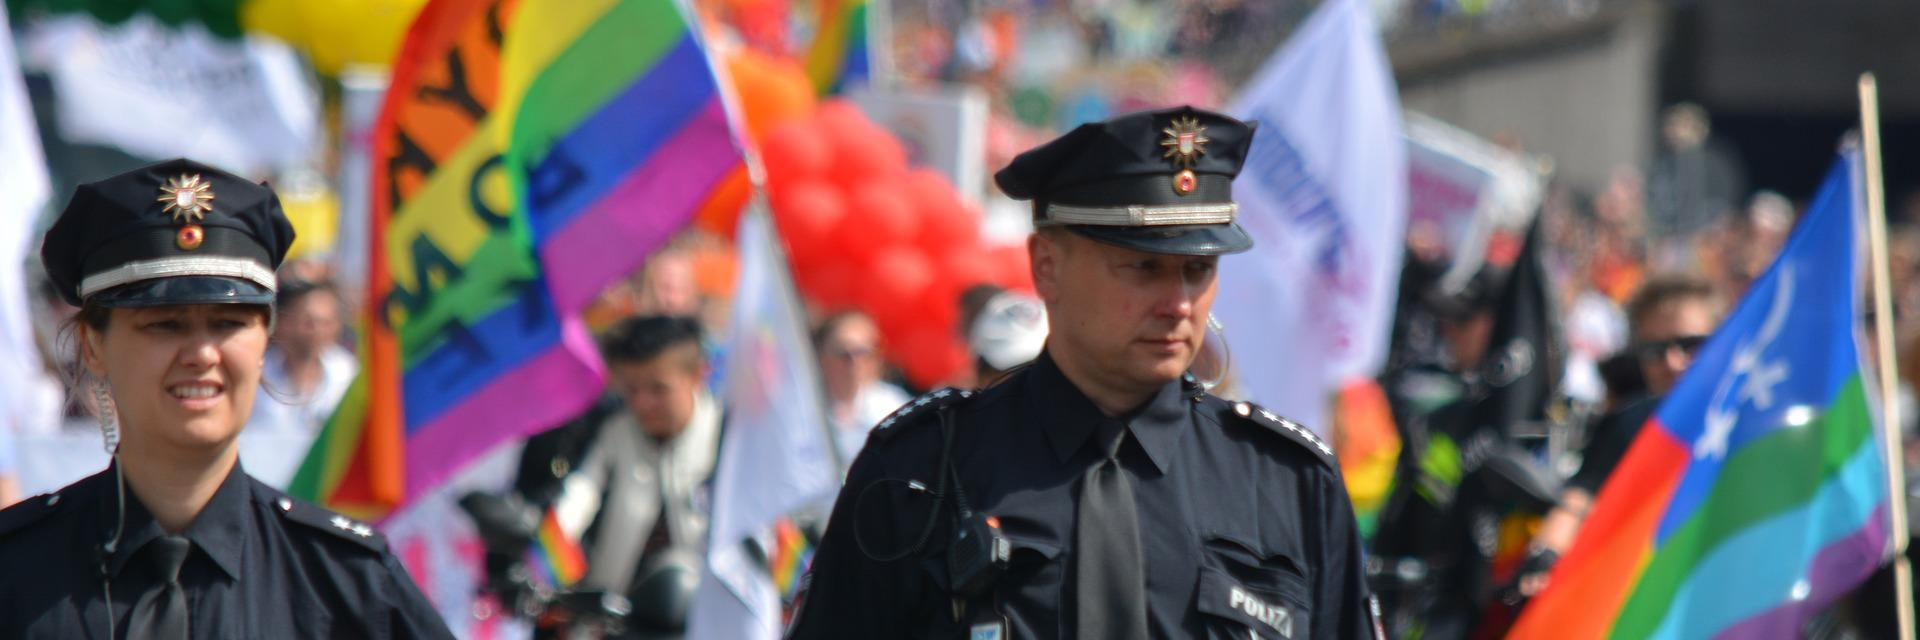 Police at gay pride parade